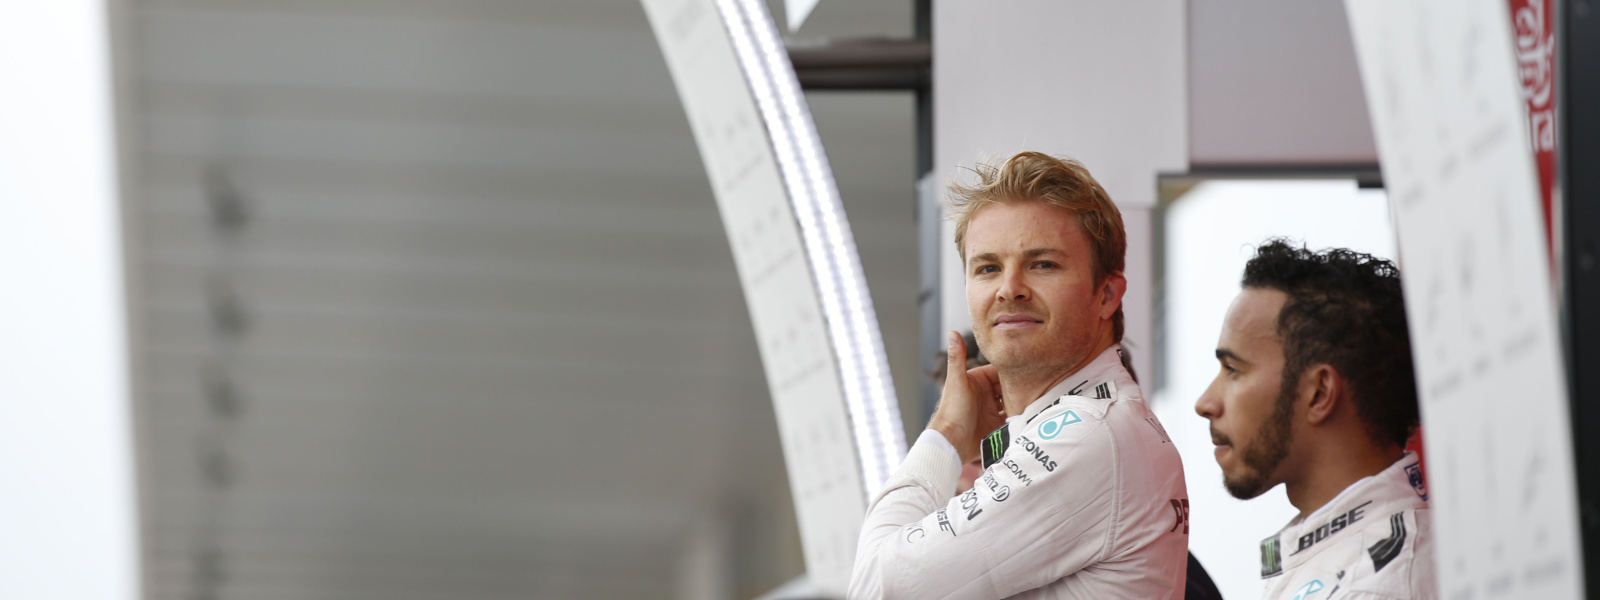 Motorsports: FIA Formula One World Championship 2016, Grand Prix of Japan,  #6 Nico Rosberg (GER, Mercedes AMG Petronas Formula One Team), #44 Lewis Hamilton (GBR, Mercedes AMG Petronas Formula One Team),  *** Local Caption *** +++ www.hoch-zwei.net +++ copyright: HOCH ZWEI +++